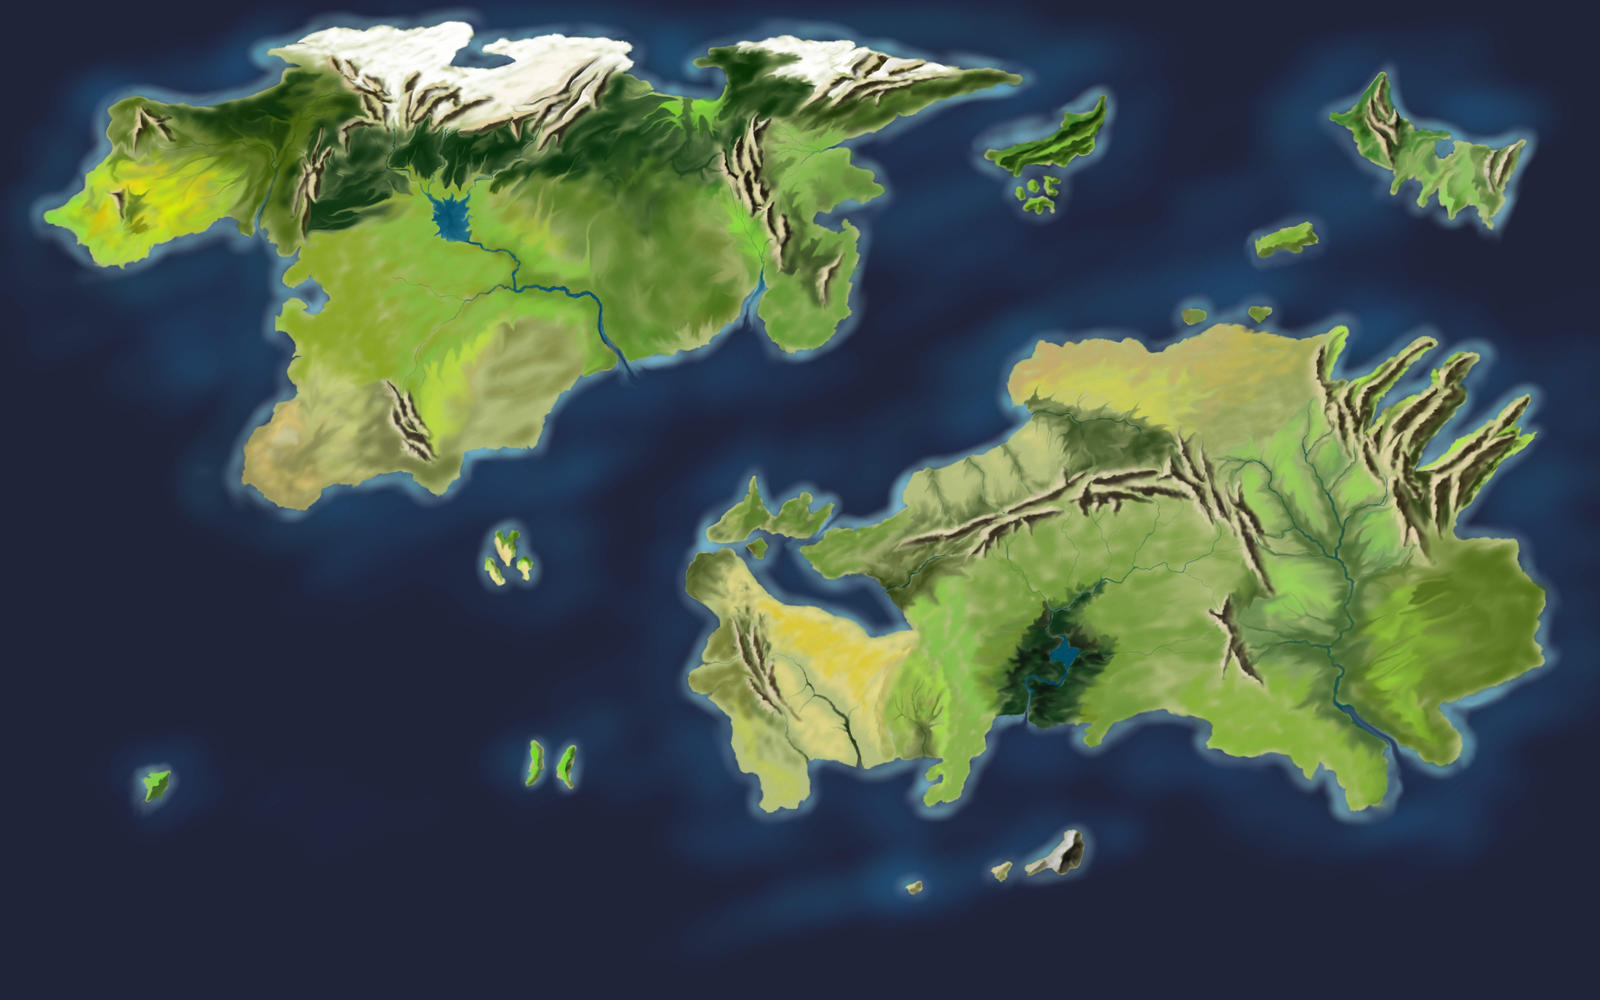 New world map by desuran on deviantart new world map by desuran new world map by desuran gumiabroncs Images